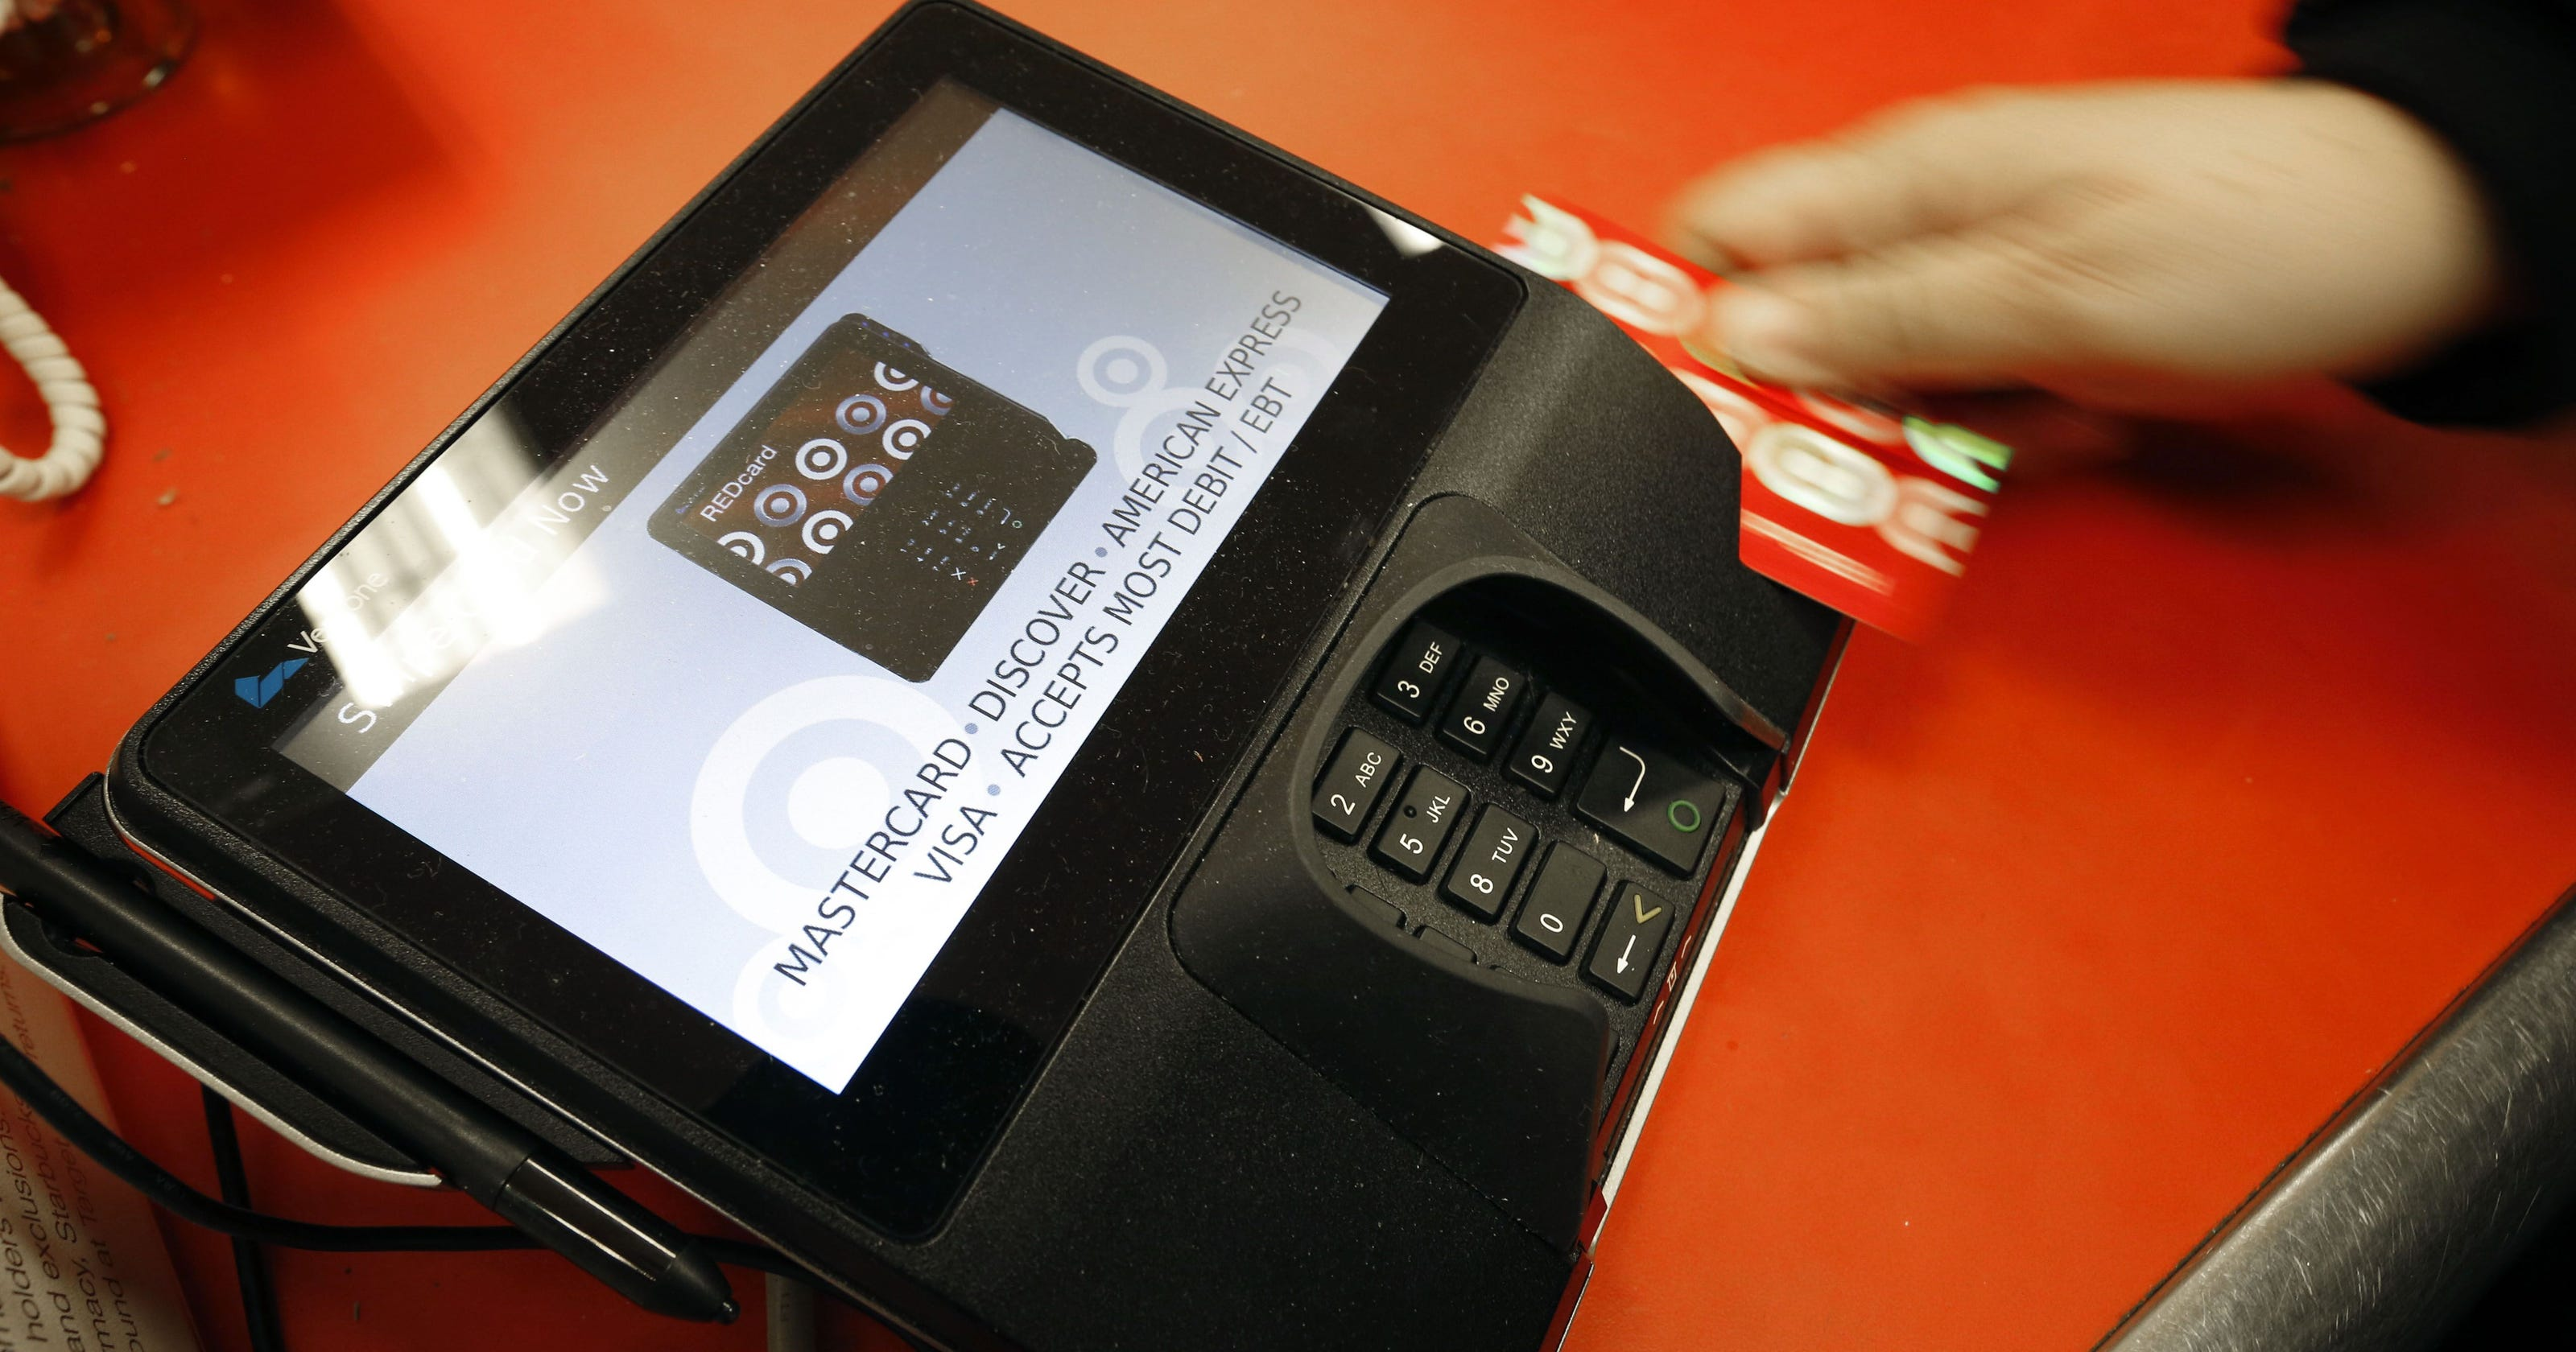 Target to pay $18 5M for 2013 data breach that affected 41 million